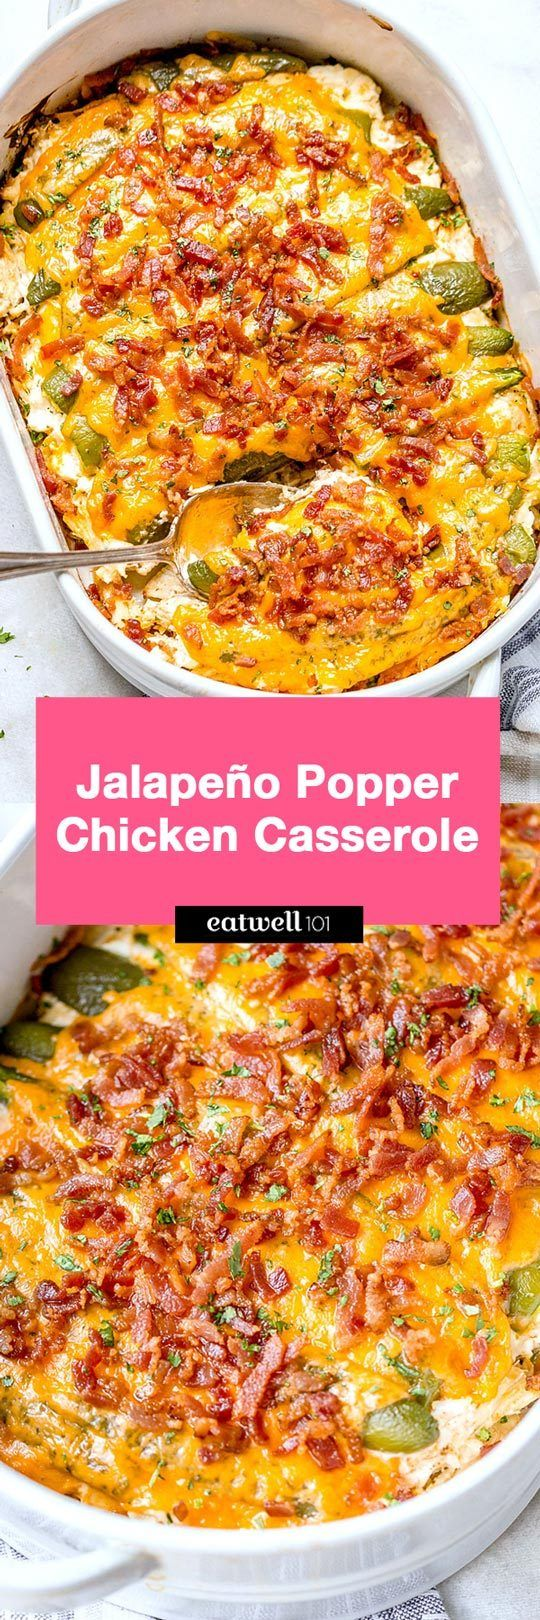 Jalapeño popper chicken casserole – So quick and easy. Everyone will love this delicious chicken